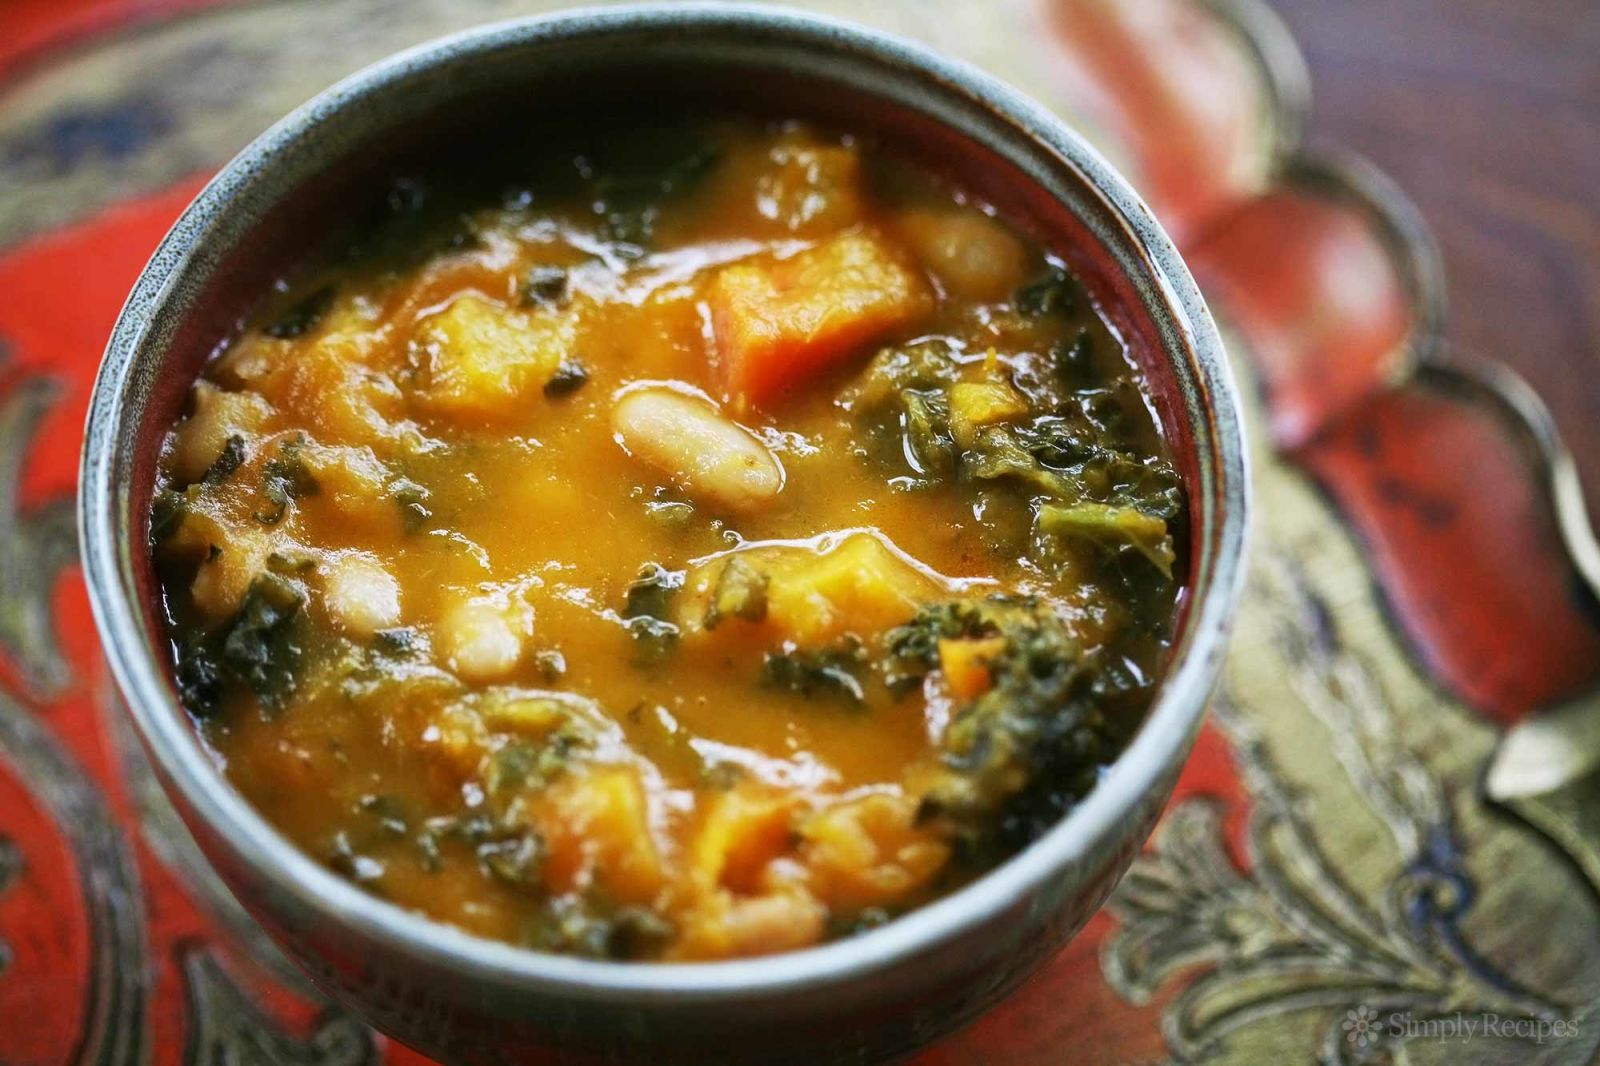 50 Homemade Vegetable Soup Recipes - How To Make Easy Vegetable Soup ...